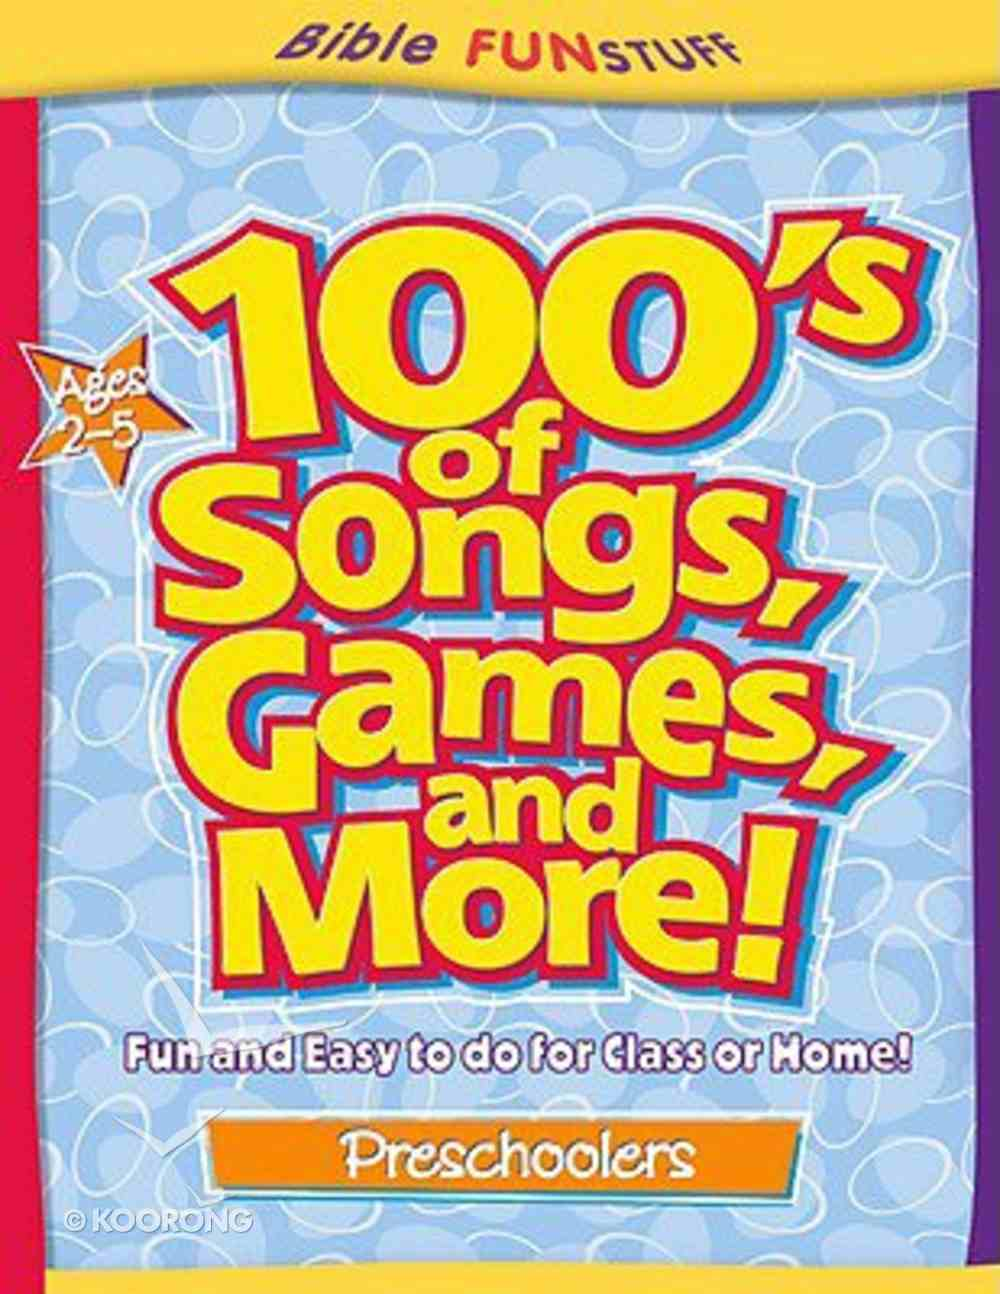 100's of Songs, Games and More! (Ages 2-5) (Bible Fun Stuff Series) Paperback